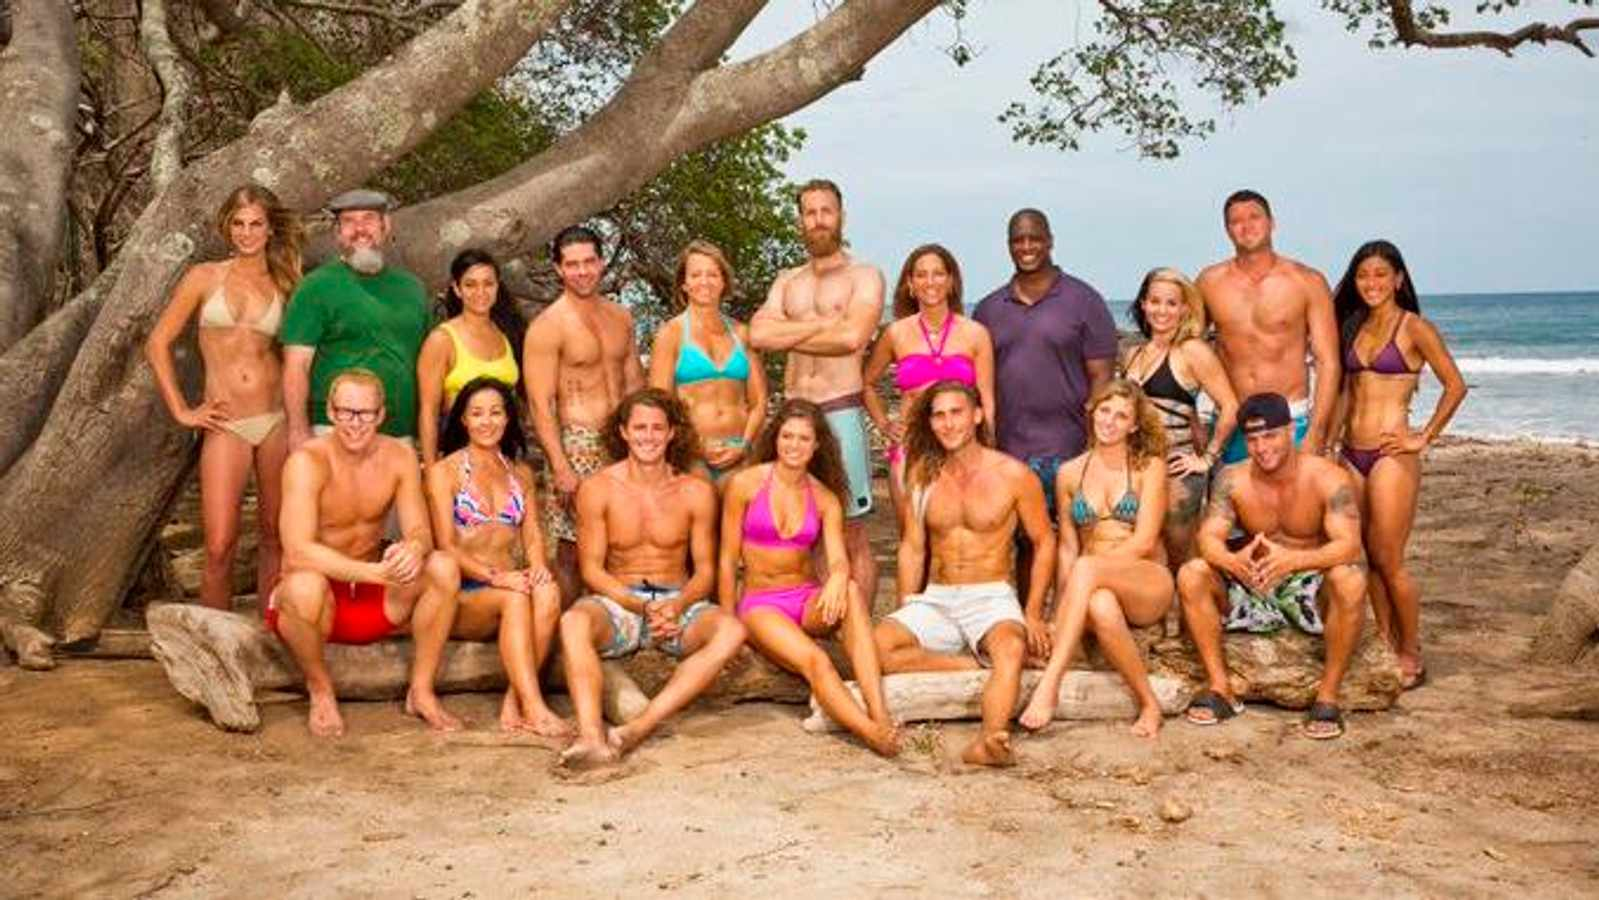 Contestants battle for ultimate prize